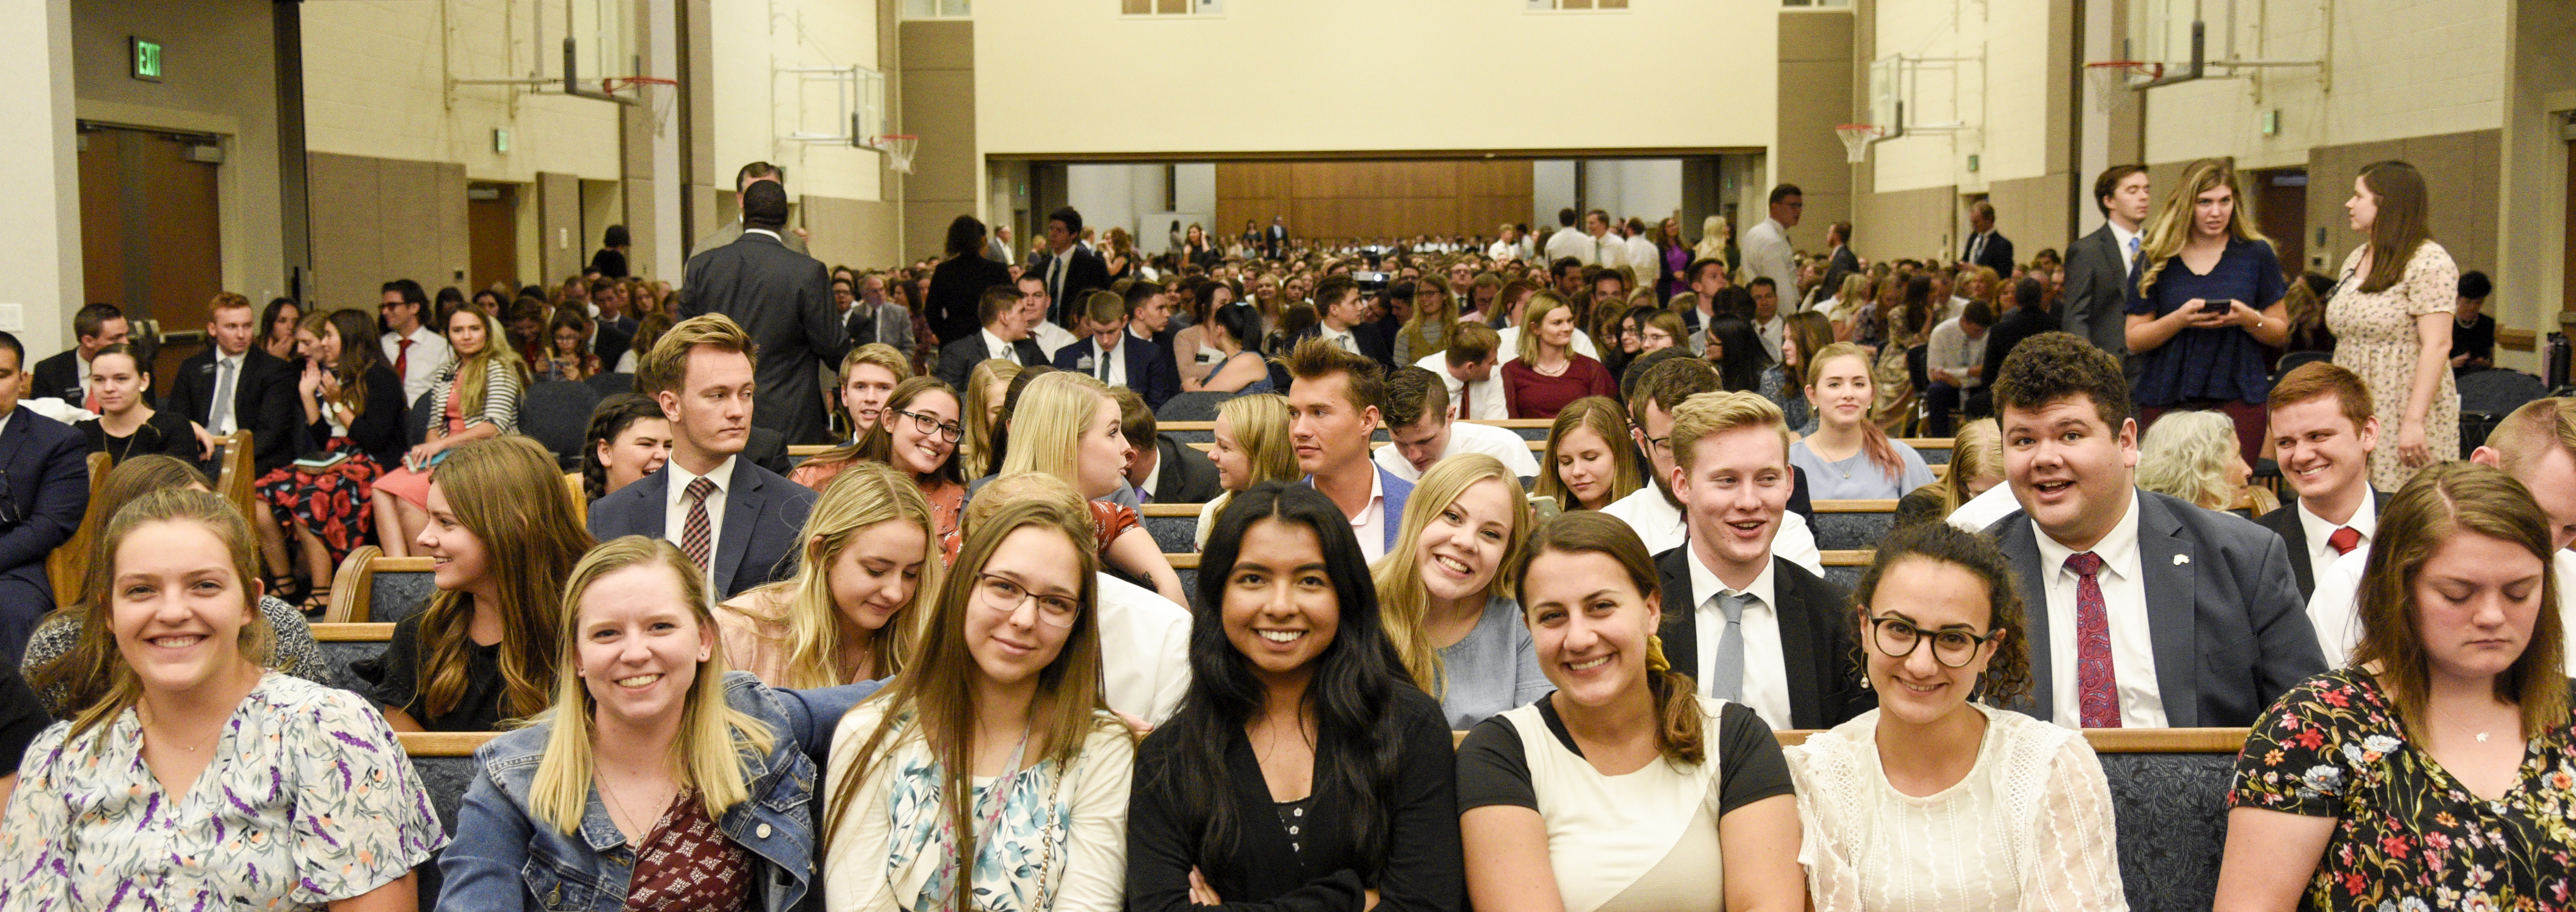 Young adults gather for a devotional given by Elder Ronald A. Rasband at the Tempe Arizona Institute of Religion on Oct. 20.